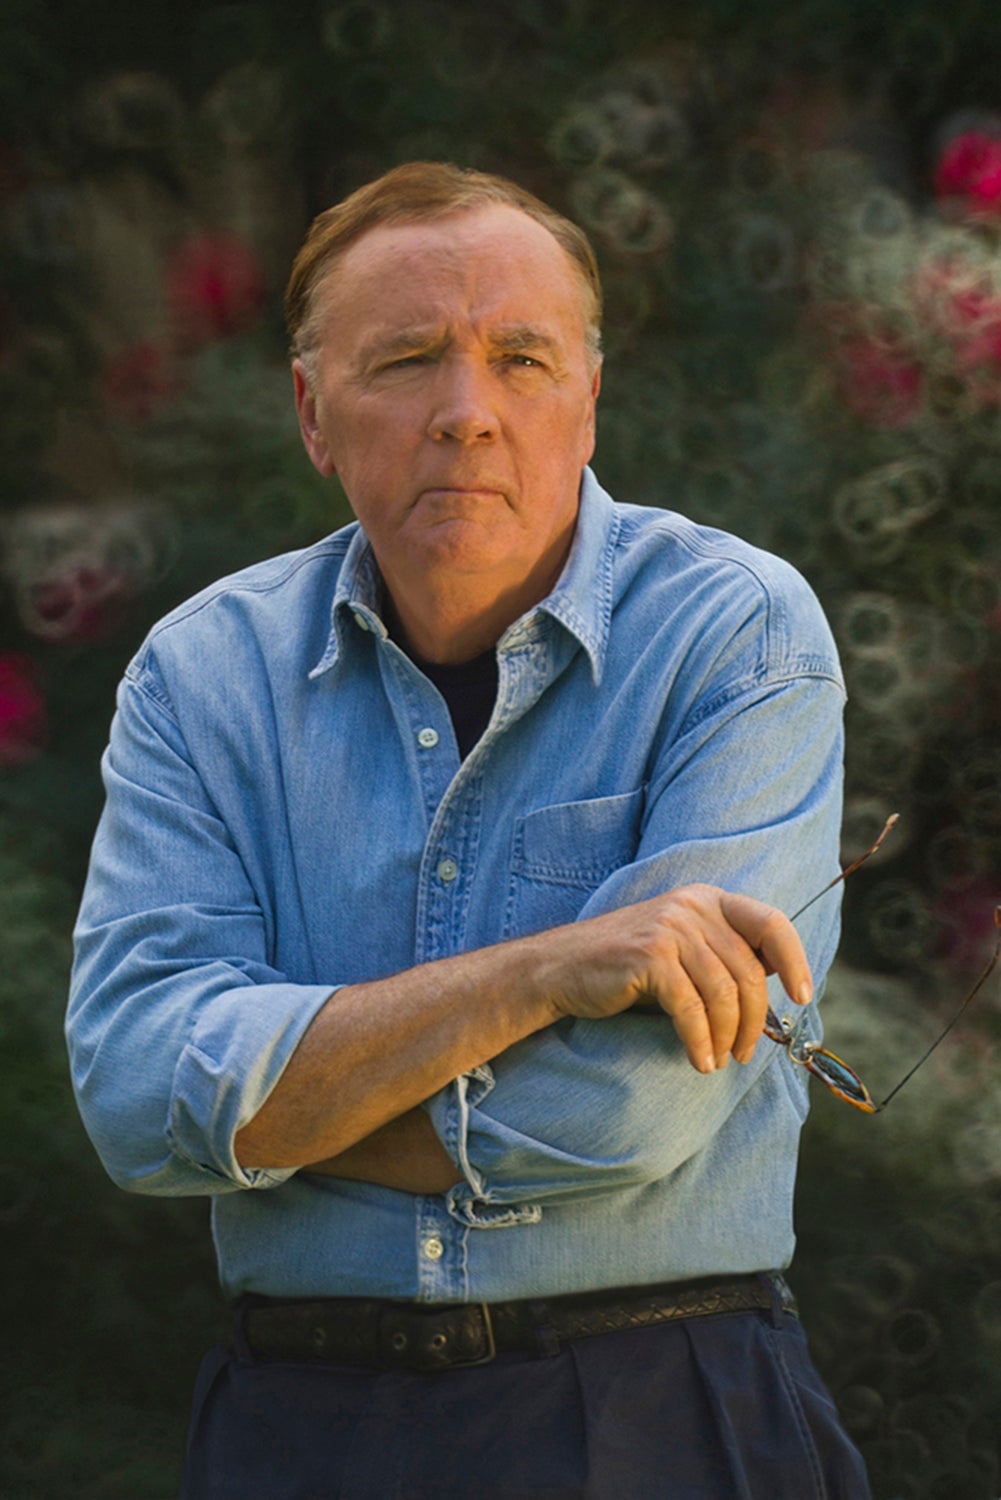 james patterson on the tee